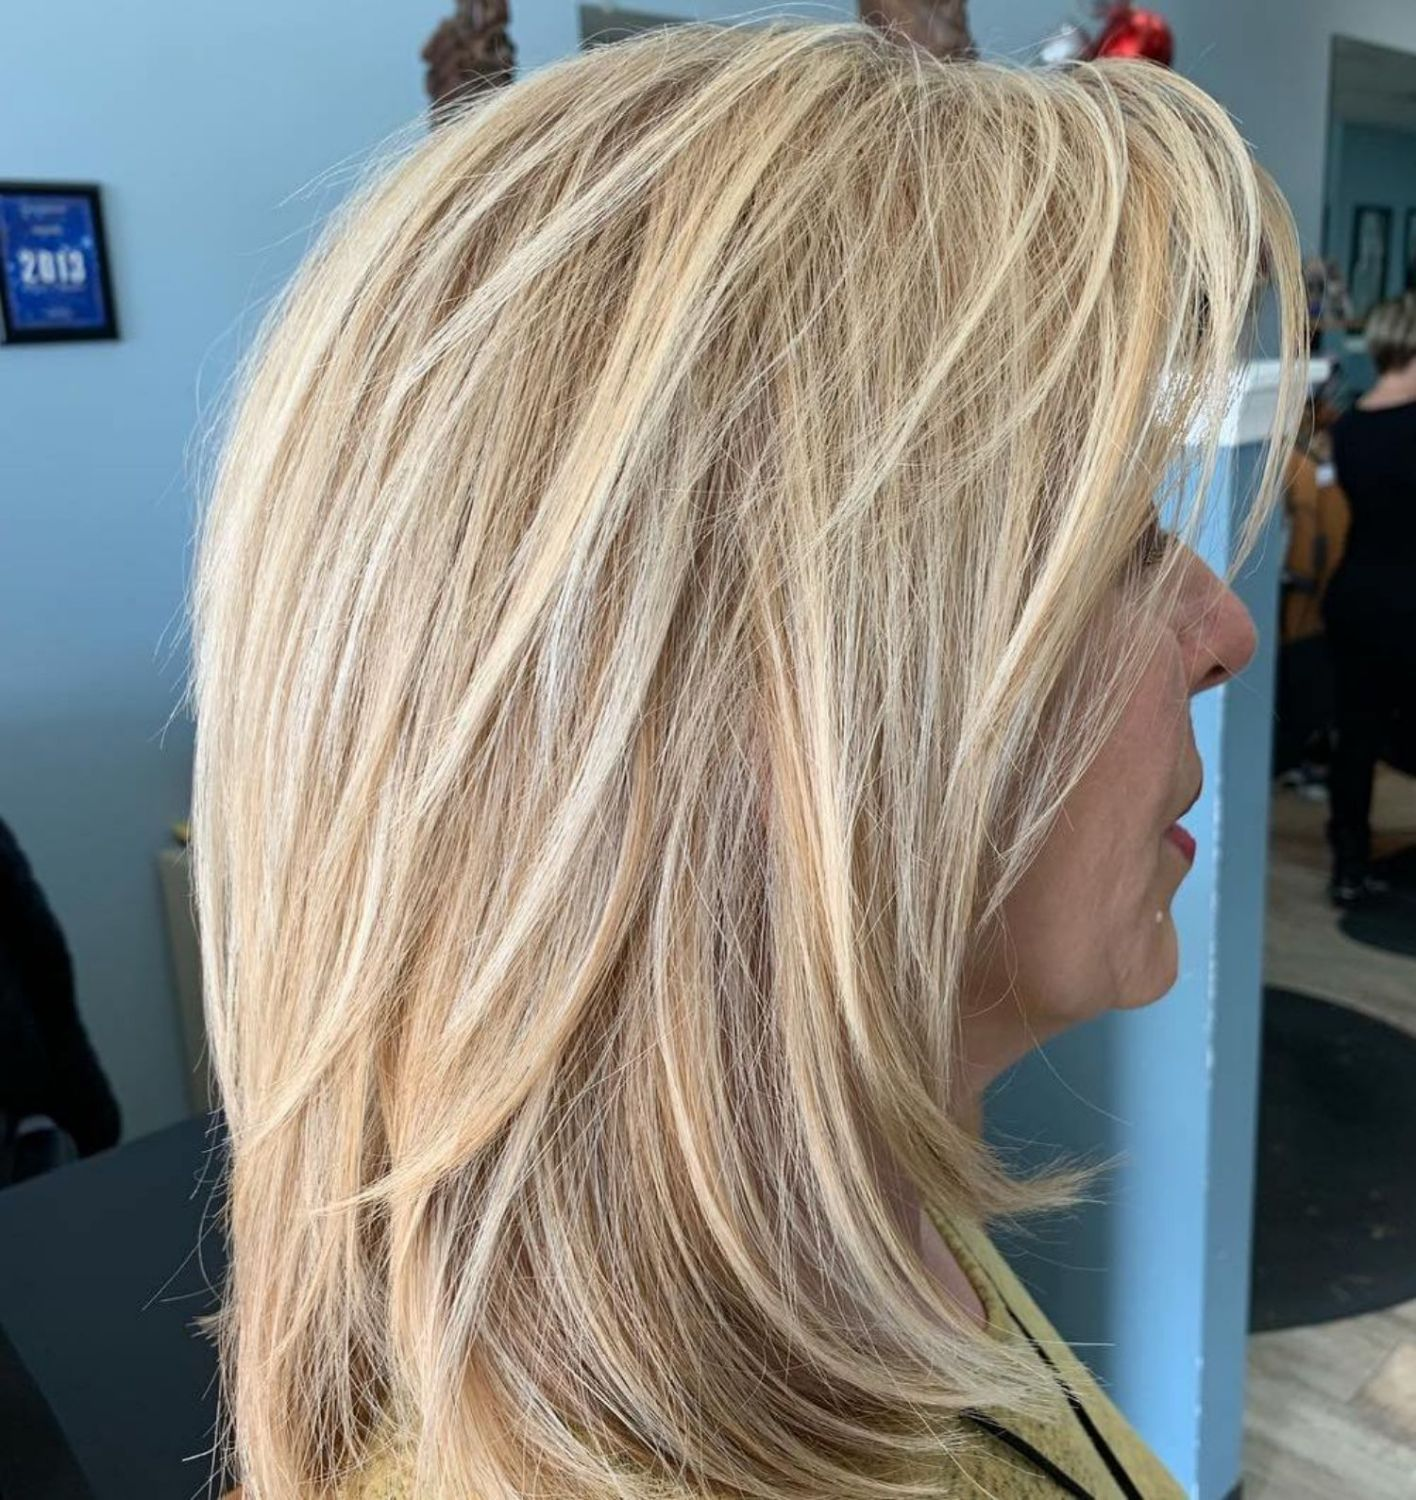 80 Best Modern Hairstyles And Haircuts For Women Over 50 Straight Blonde Hair Modern Hairstyles Hair Styles For Women Over 50